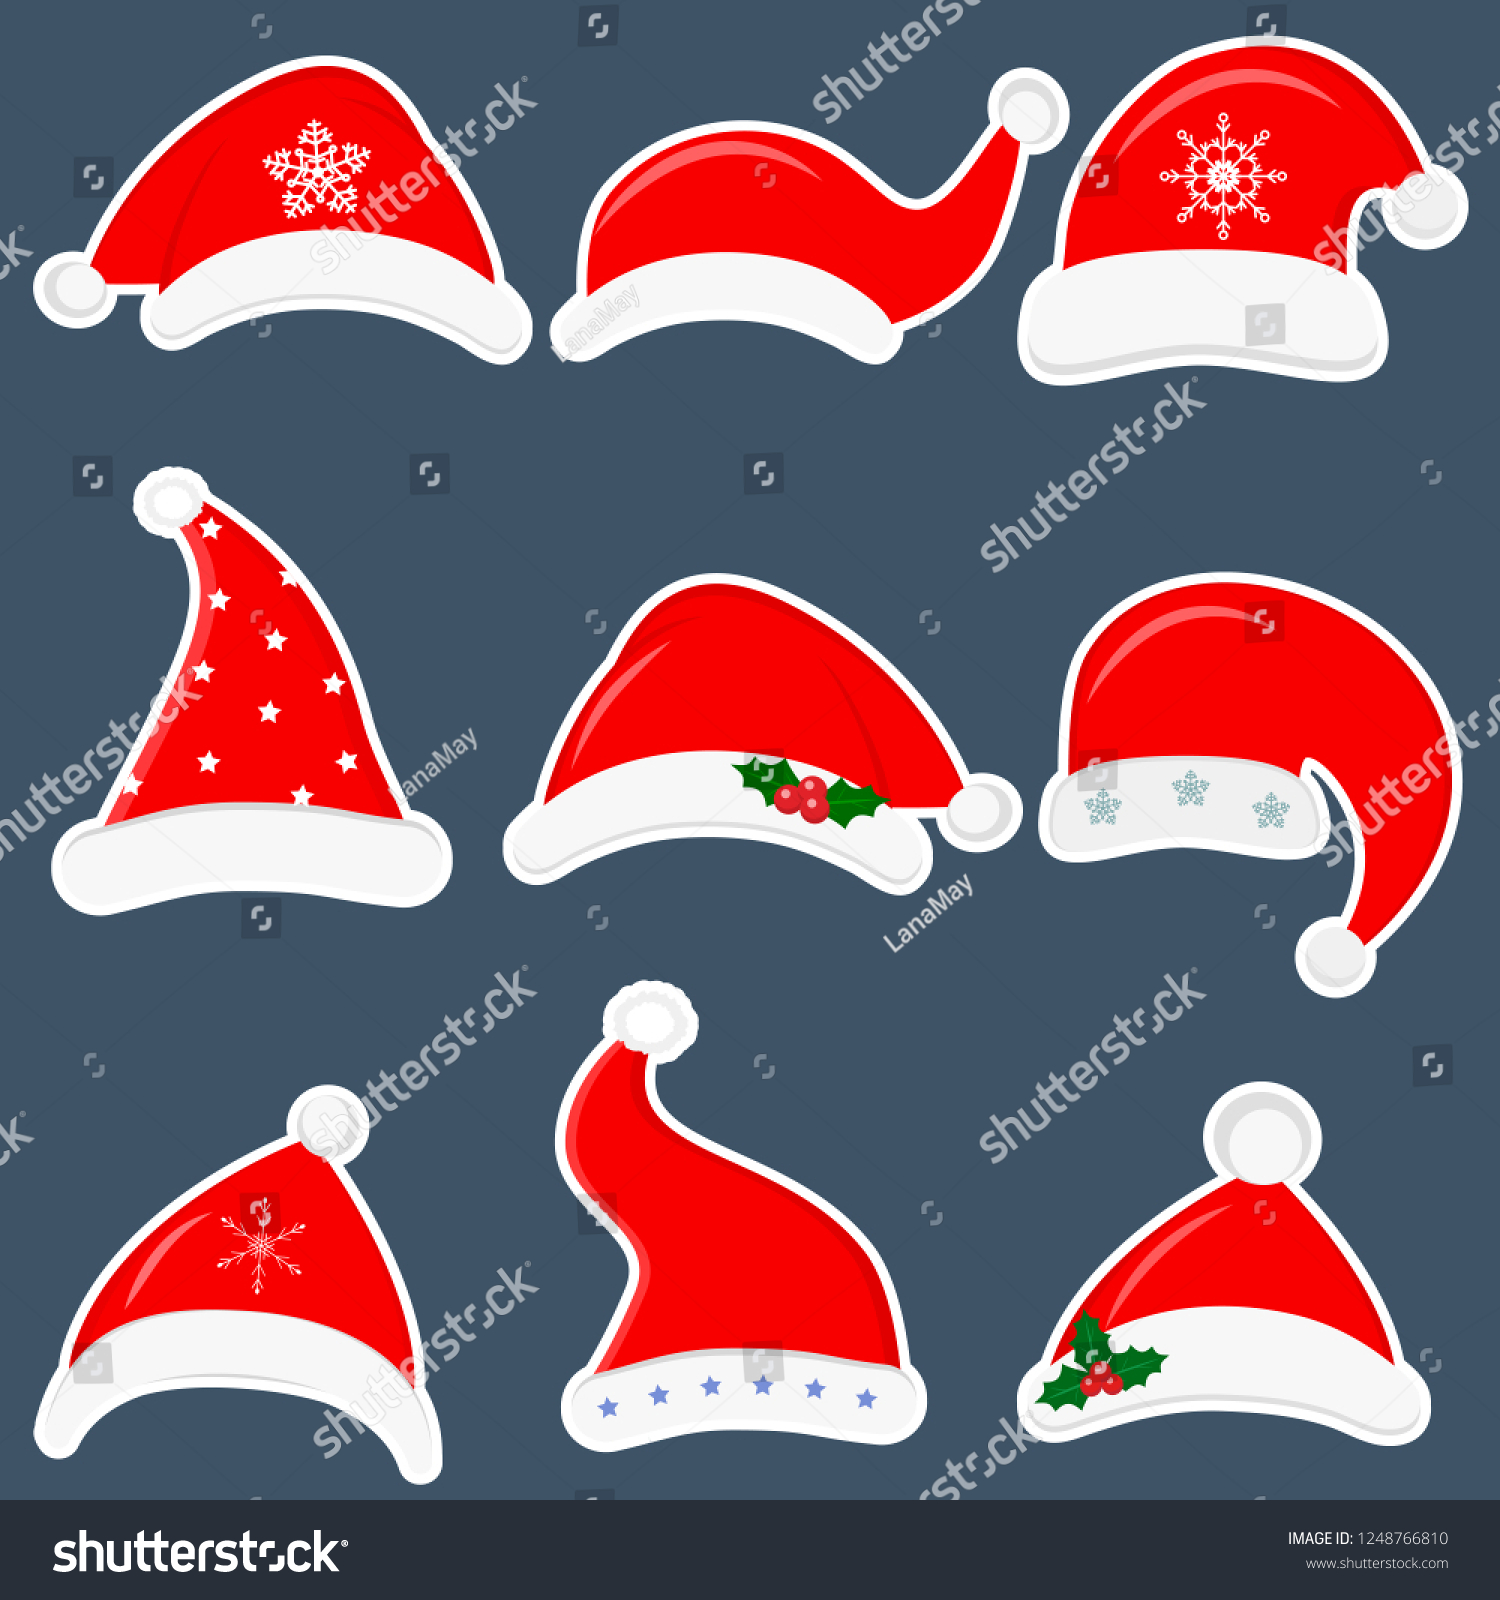 happy new year and merry christmas set of nine different santa hats stickers with various